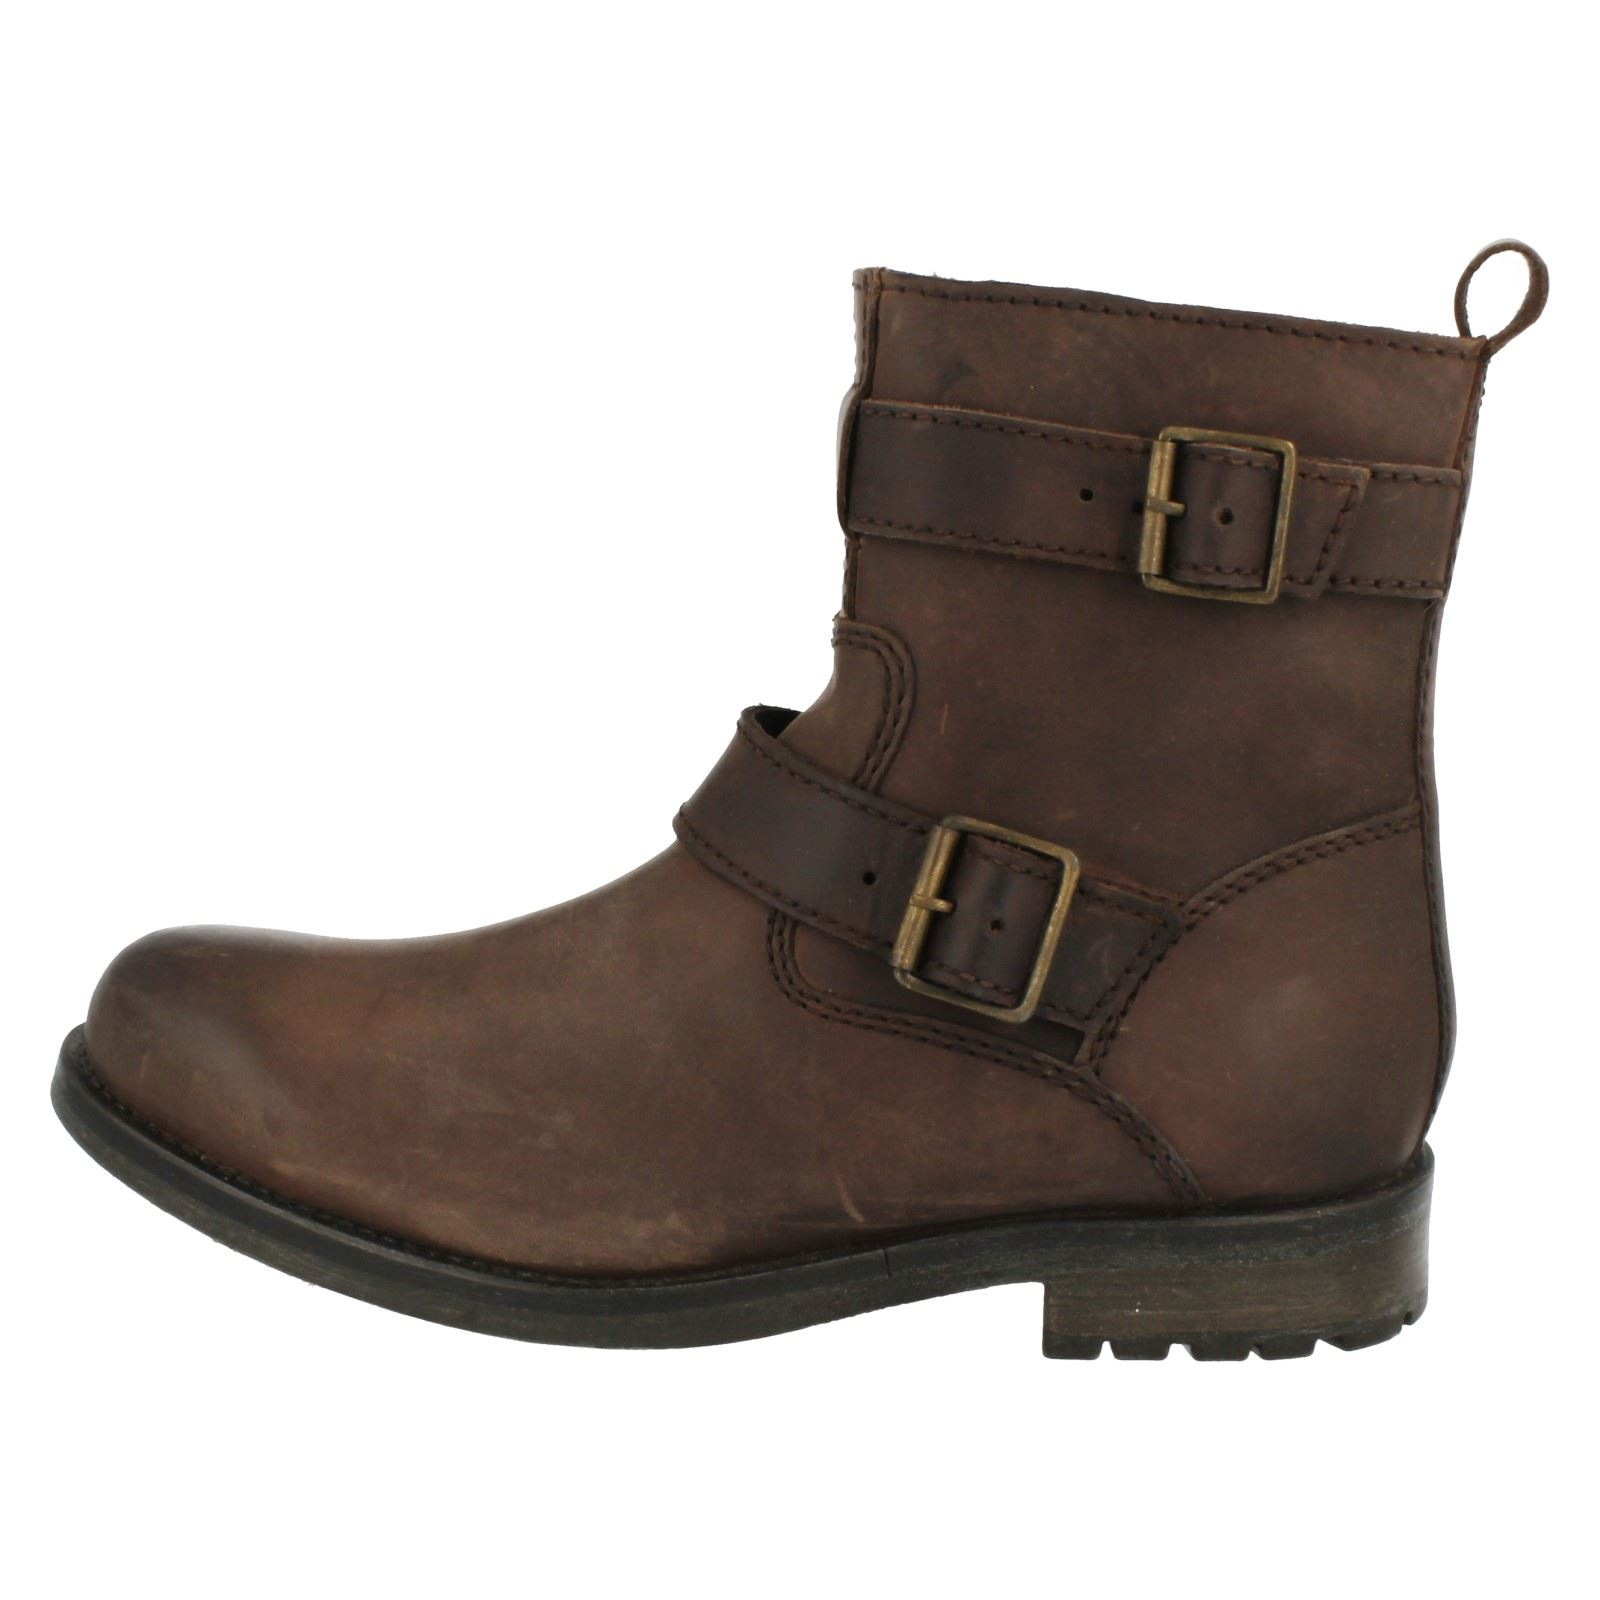 Mens Clarks Ankle Boots 'Russett Strap'